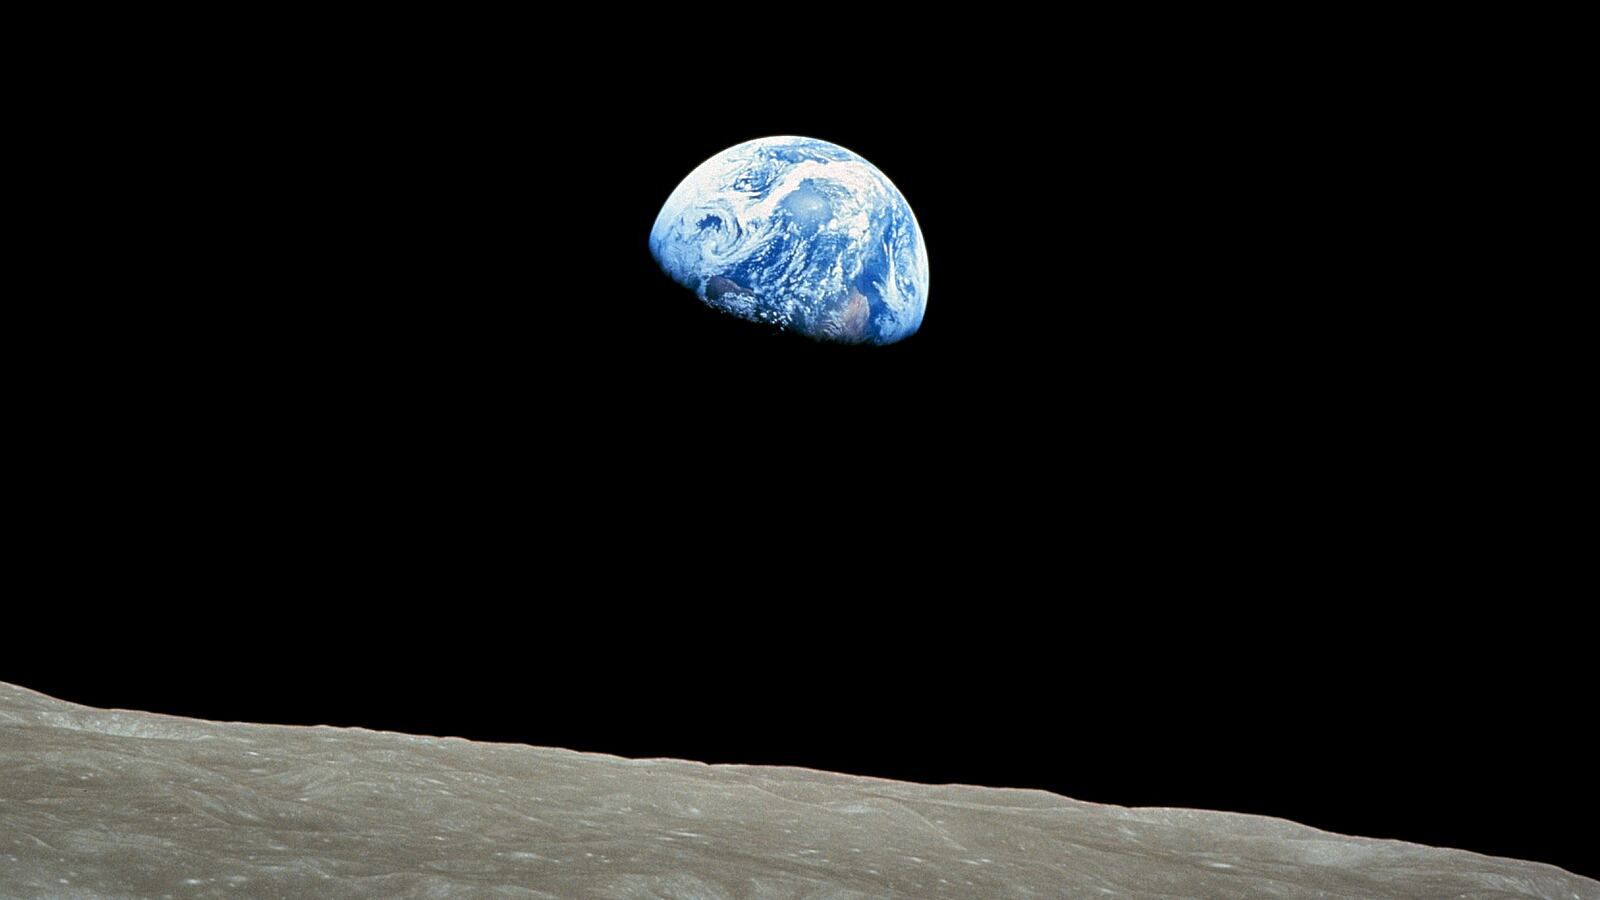 Image of Earth from the Moon